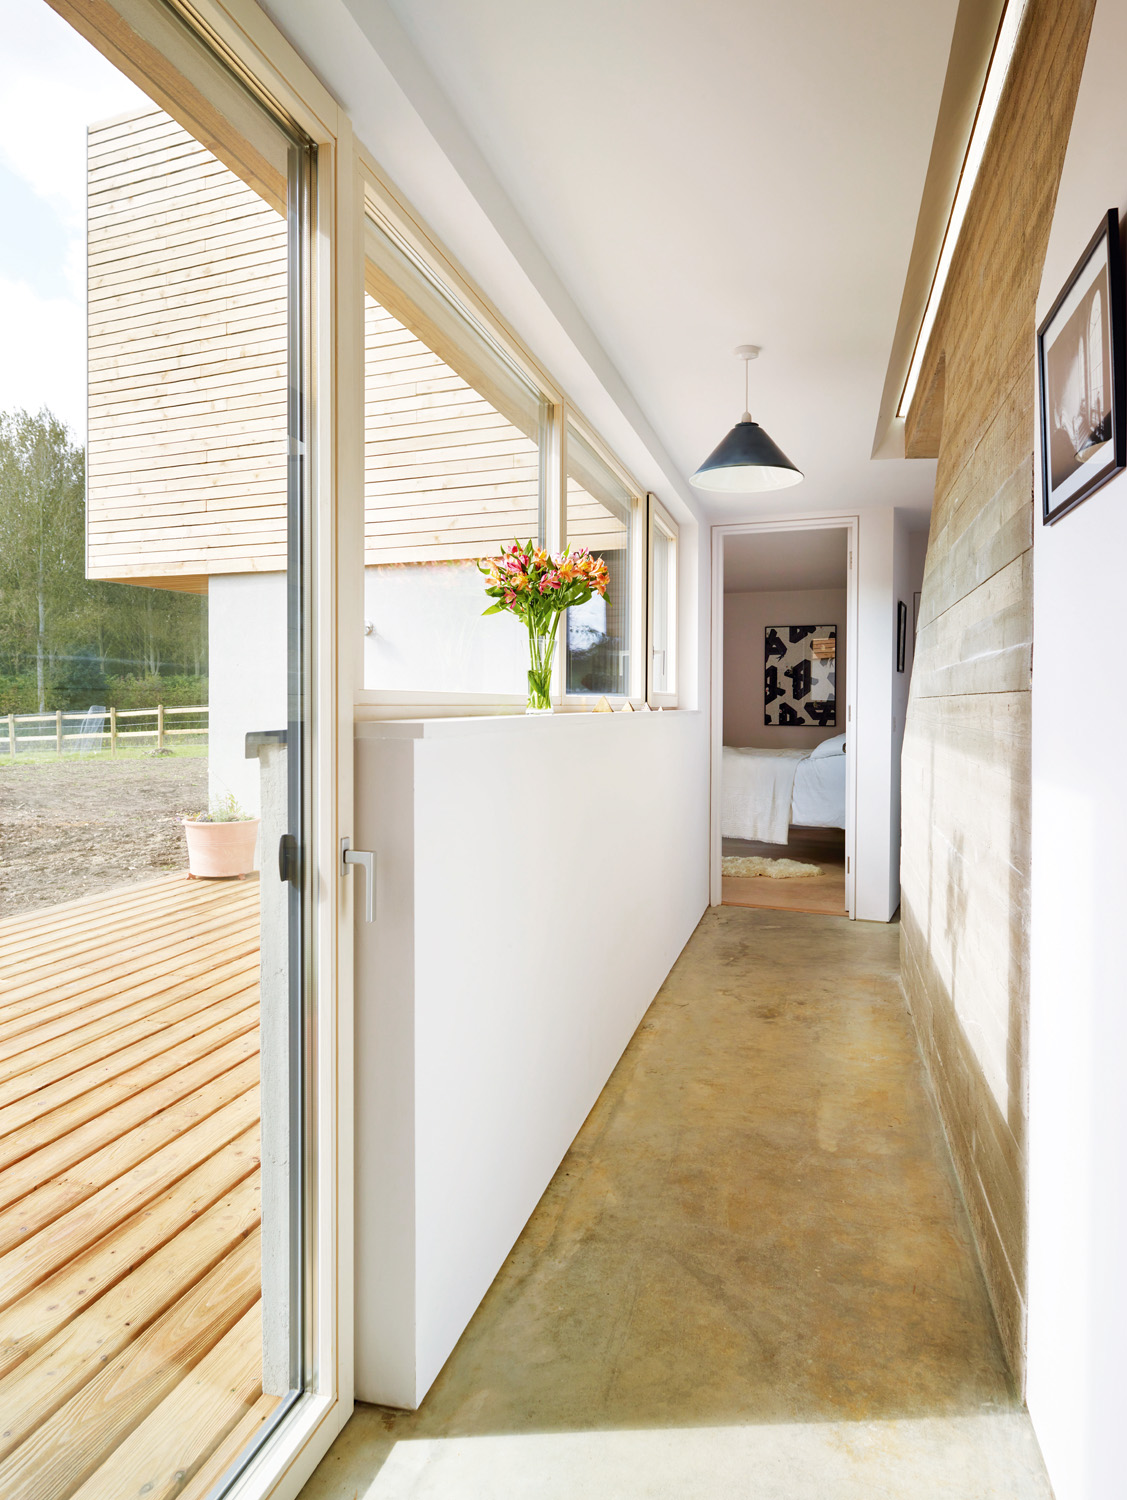 Grand Designs UK: Idyllic and super-eco home - Completehome